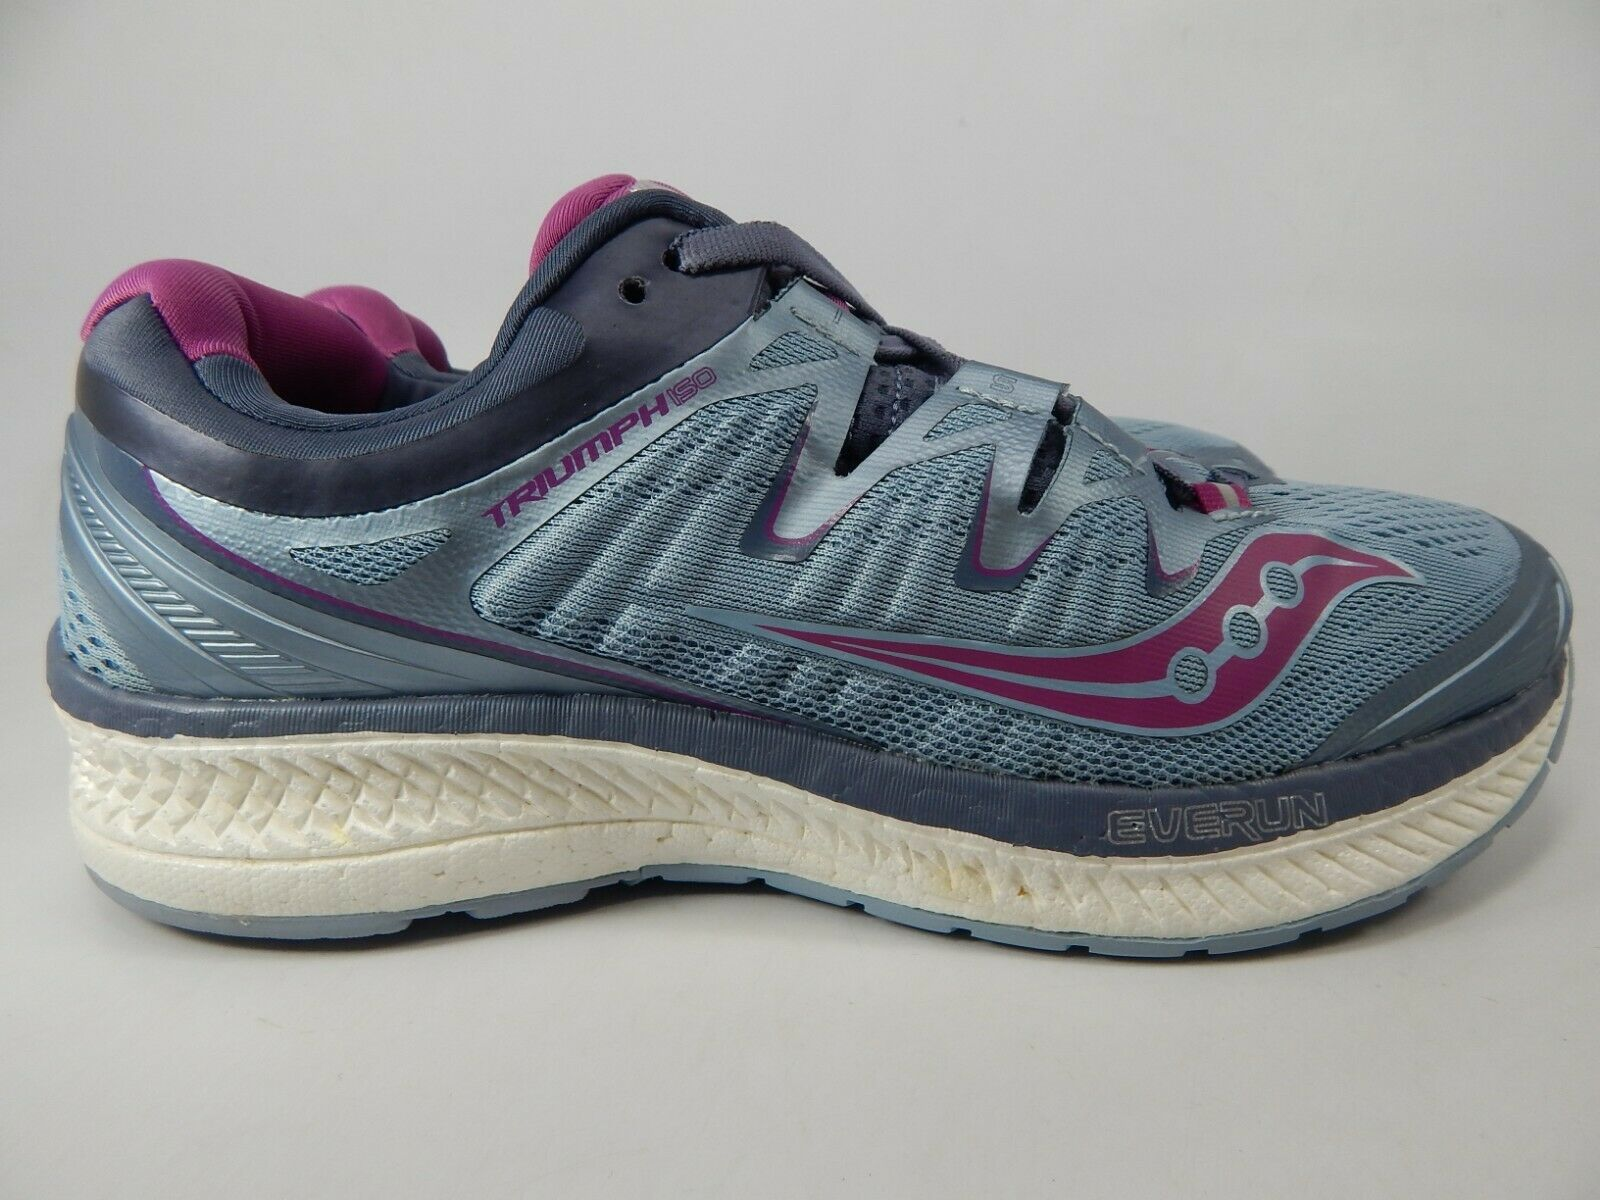 Saucony Triumph ISO 4 Size US 8.5 M (B) EU and 50 similar items